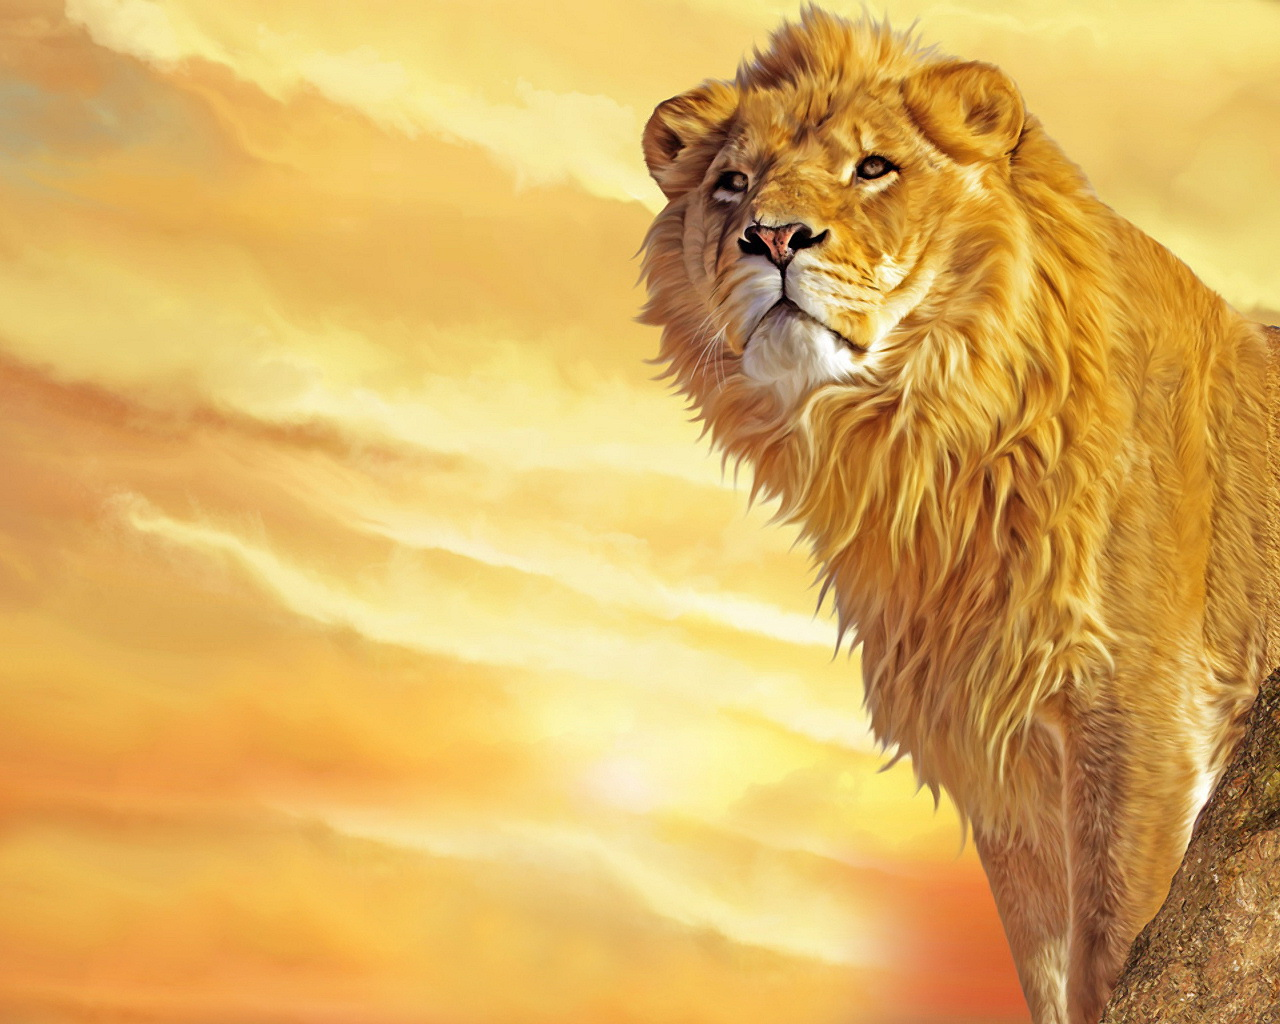 WALLPAPER DOWNLOAD 24 Lion Wallpapers For Desktop 1280x1024